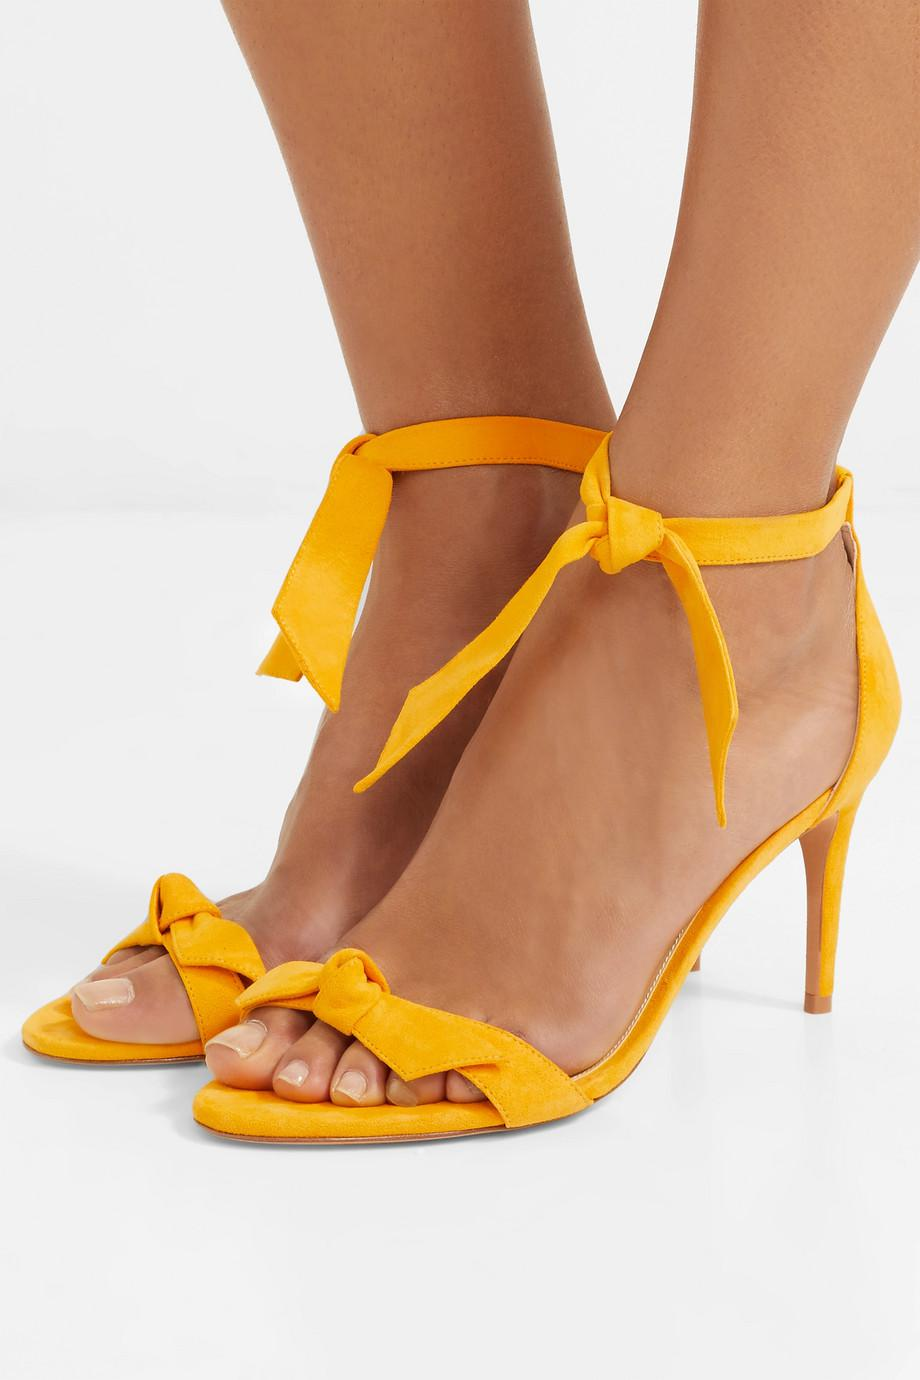 0d33b4fce alexandre-birman-yellow-Clarita-Bow-embellished-Suede-Sandals.jpeg